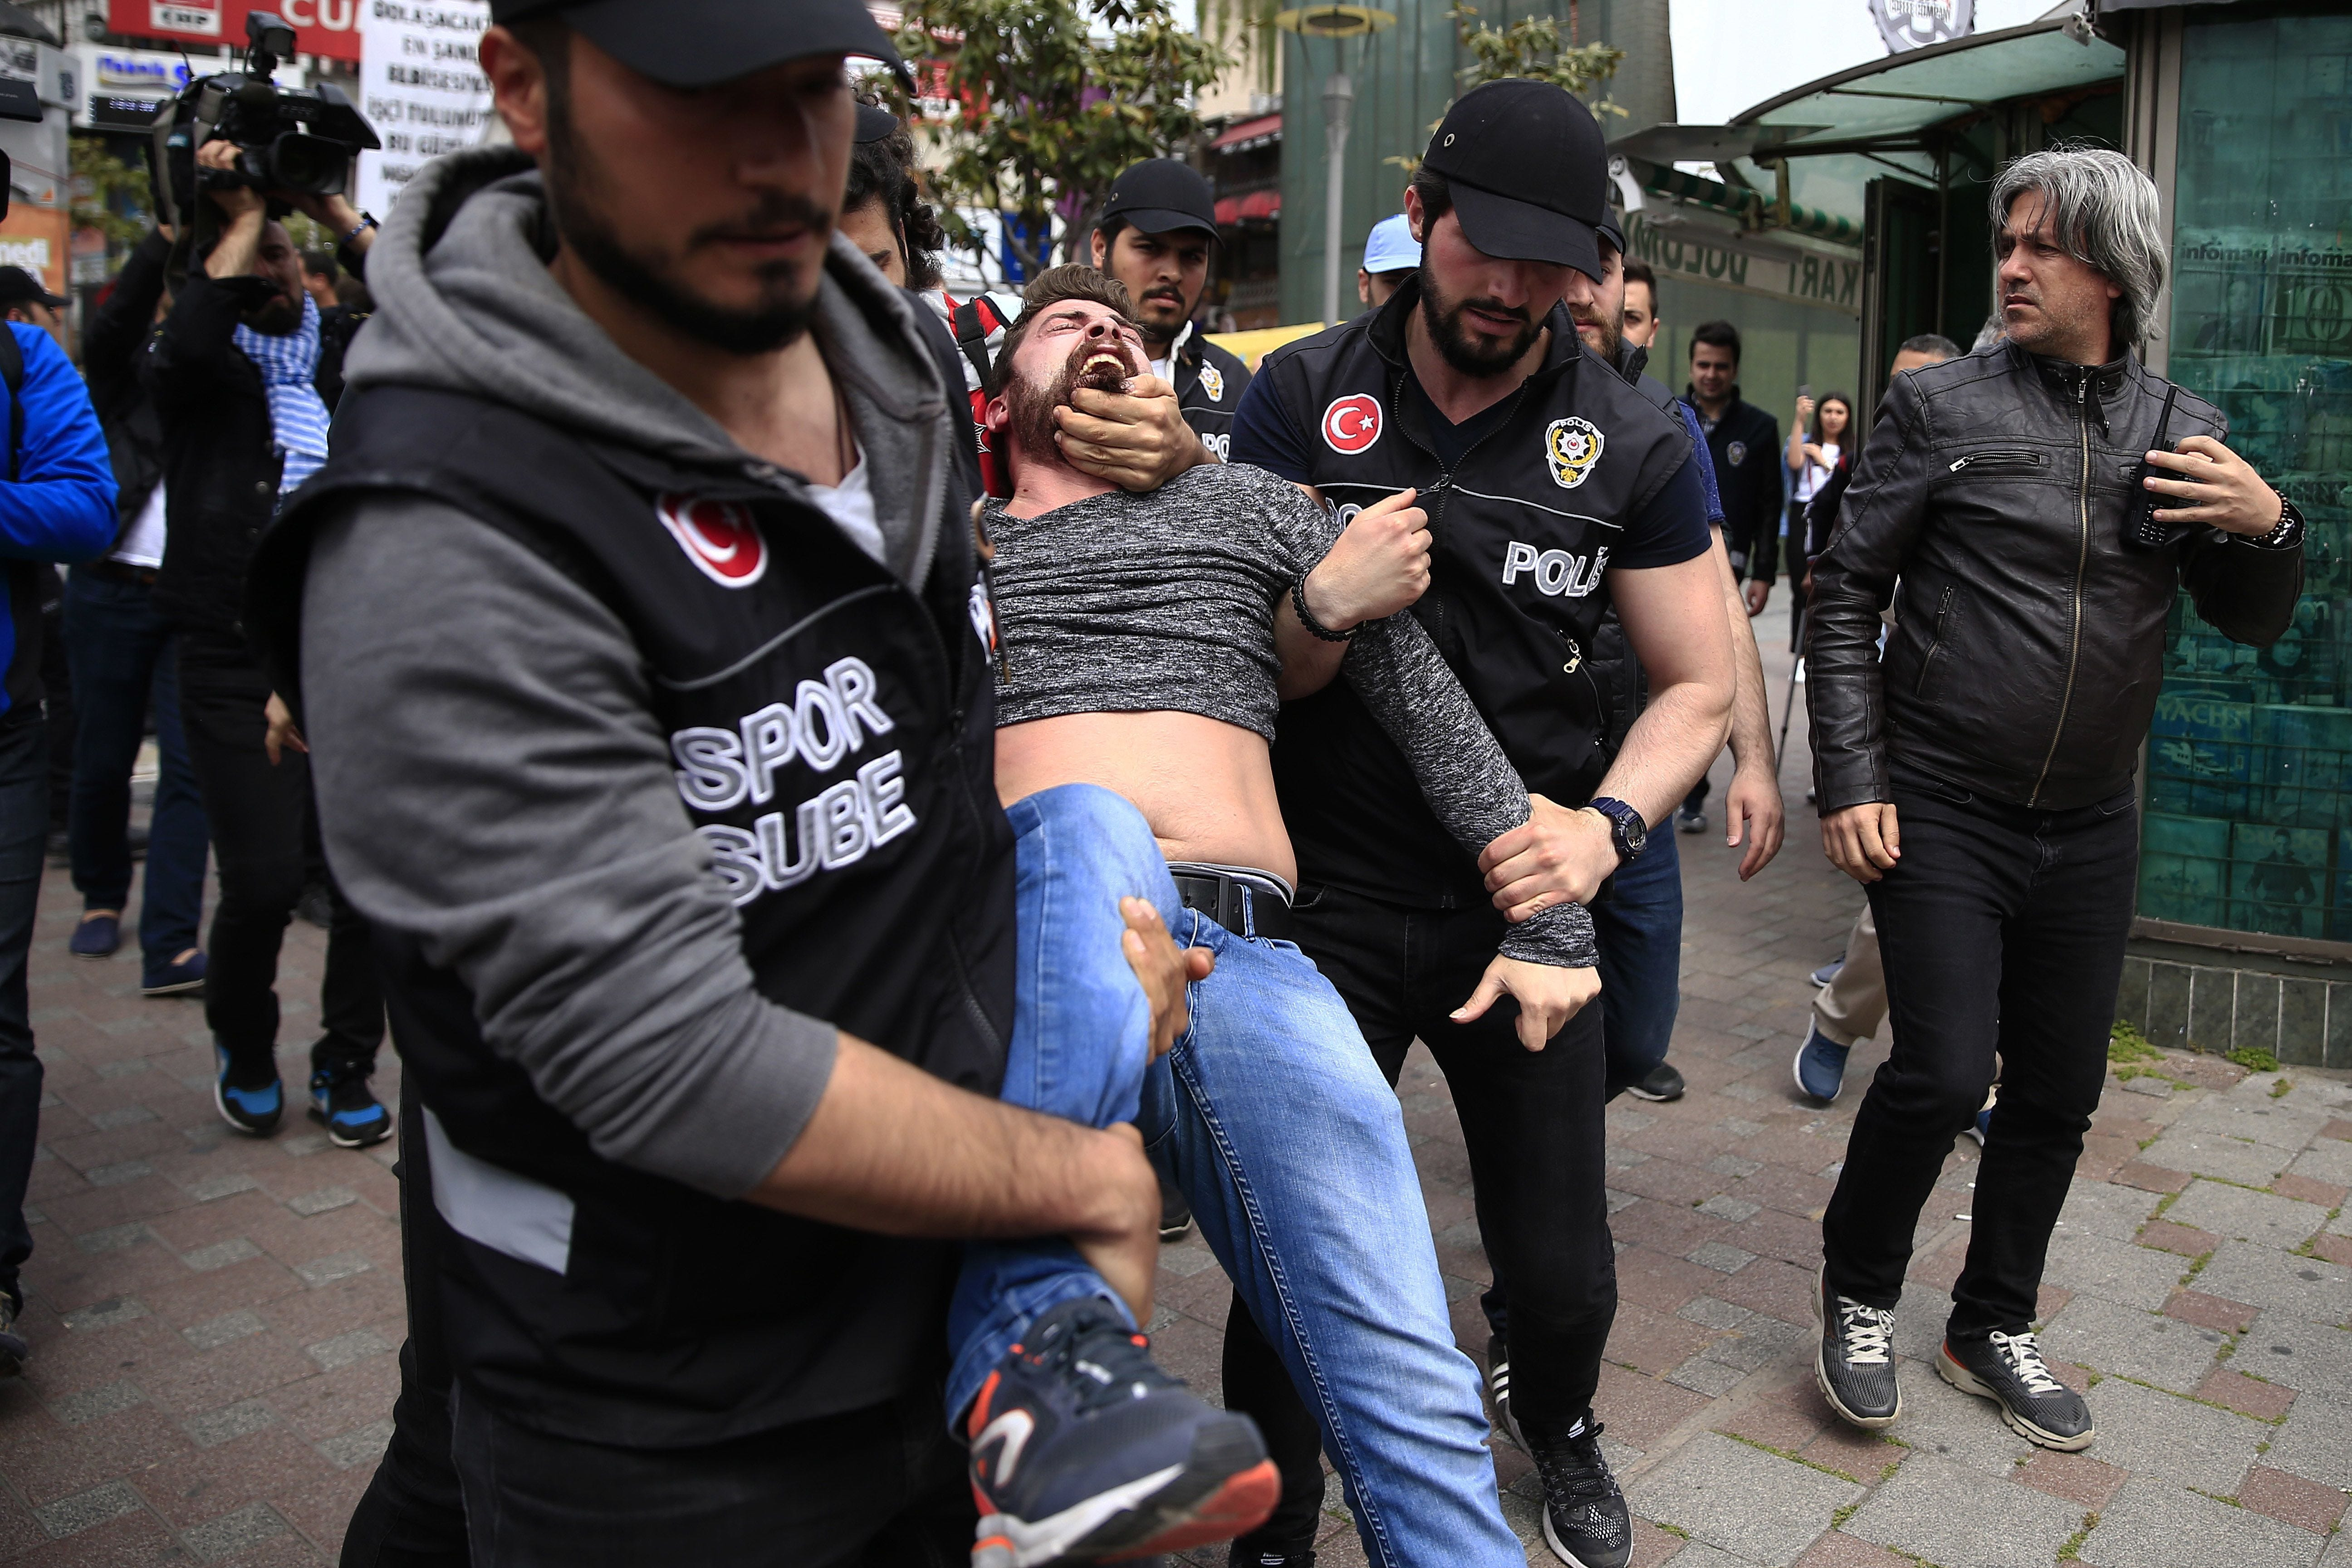 Turkey under Erdogan: Our academic colleague is on trial for signing a petition